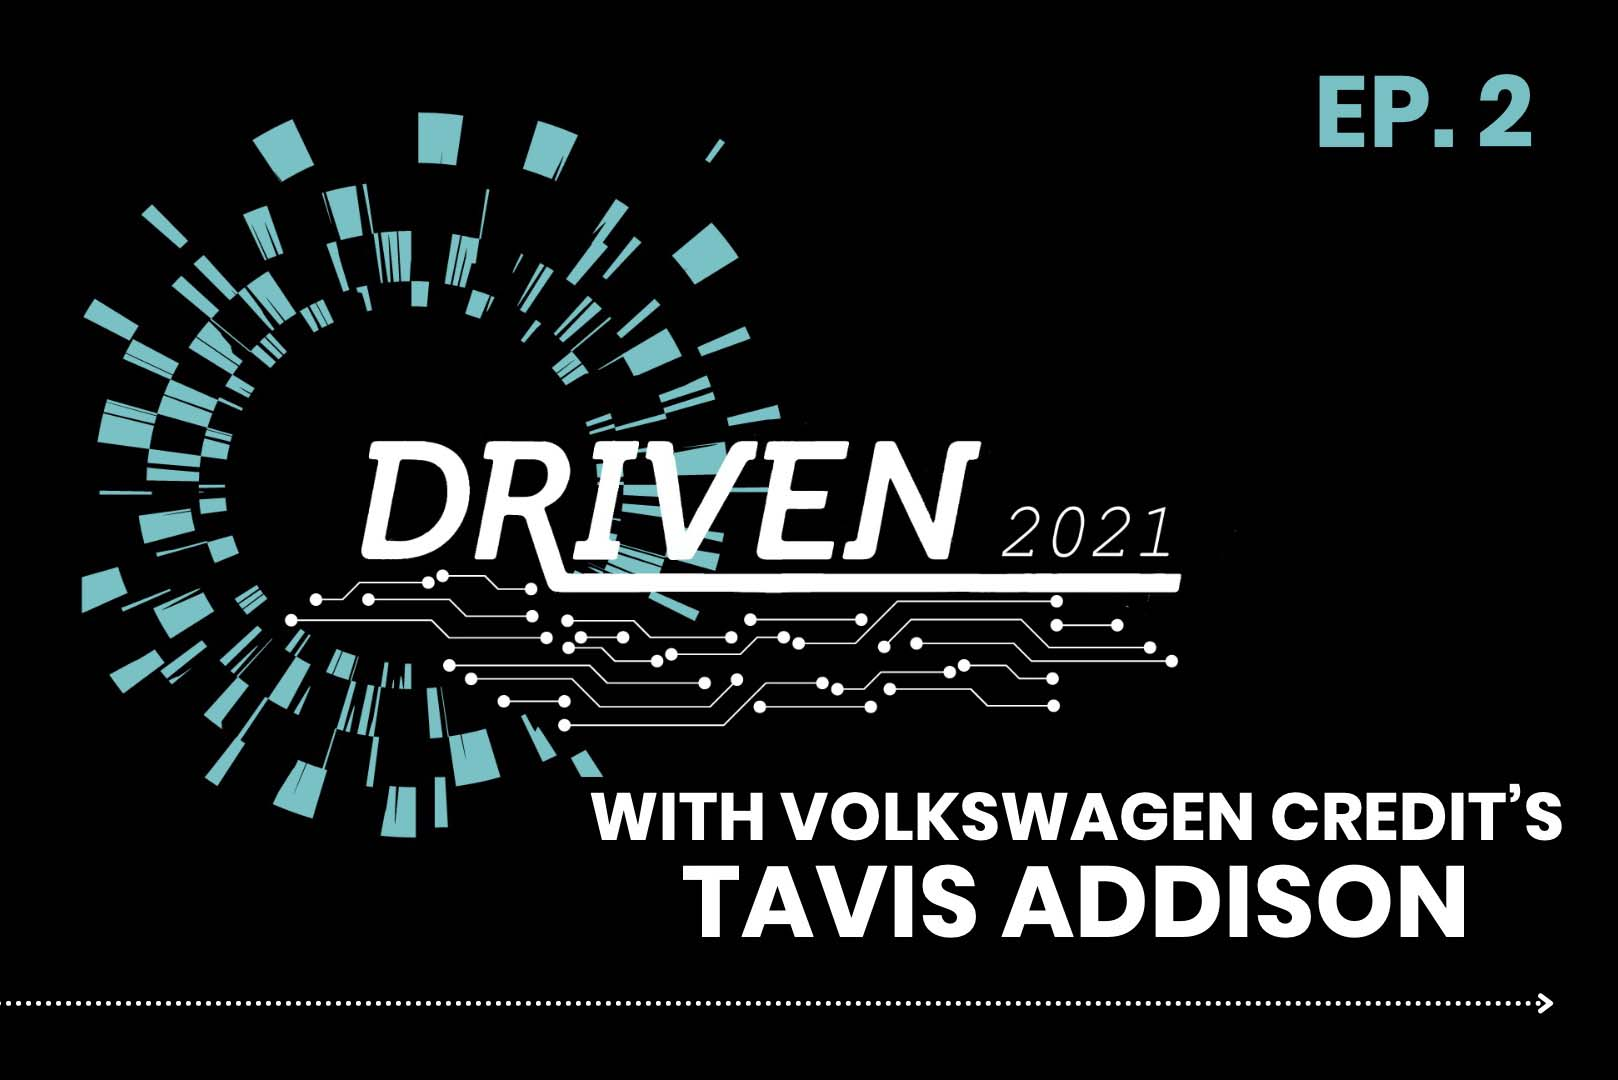 Hear from VW Credit, Inc.'s Tavis Addison! Gain insight from Tavis as he discusses everything from globalizing local automation solutions, embracing lean thinking approaches in order to create processes that can be adopted from department to department, and how VW Credit uses automation within their customer-centric culture.